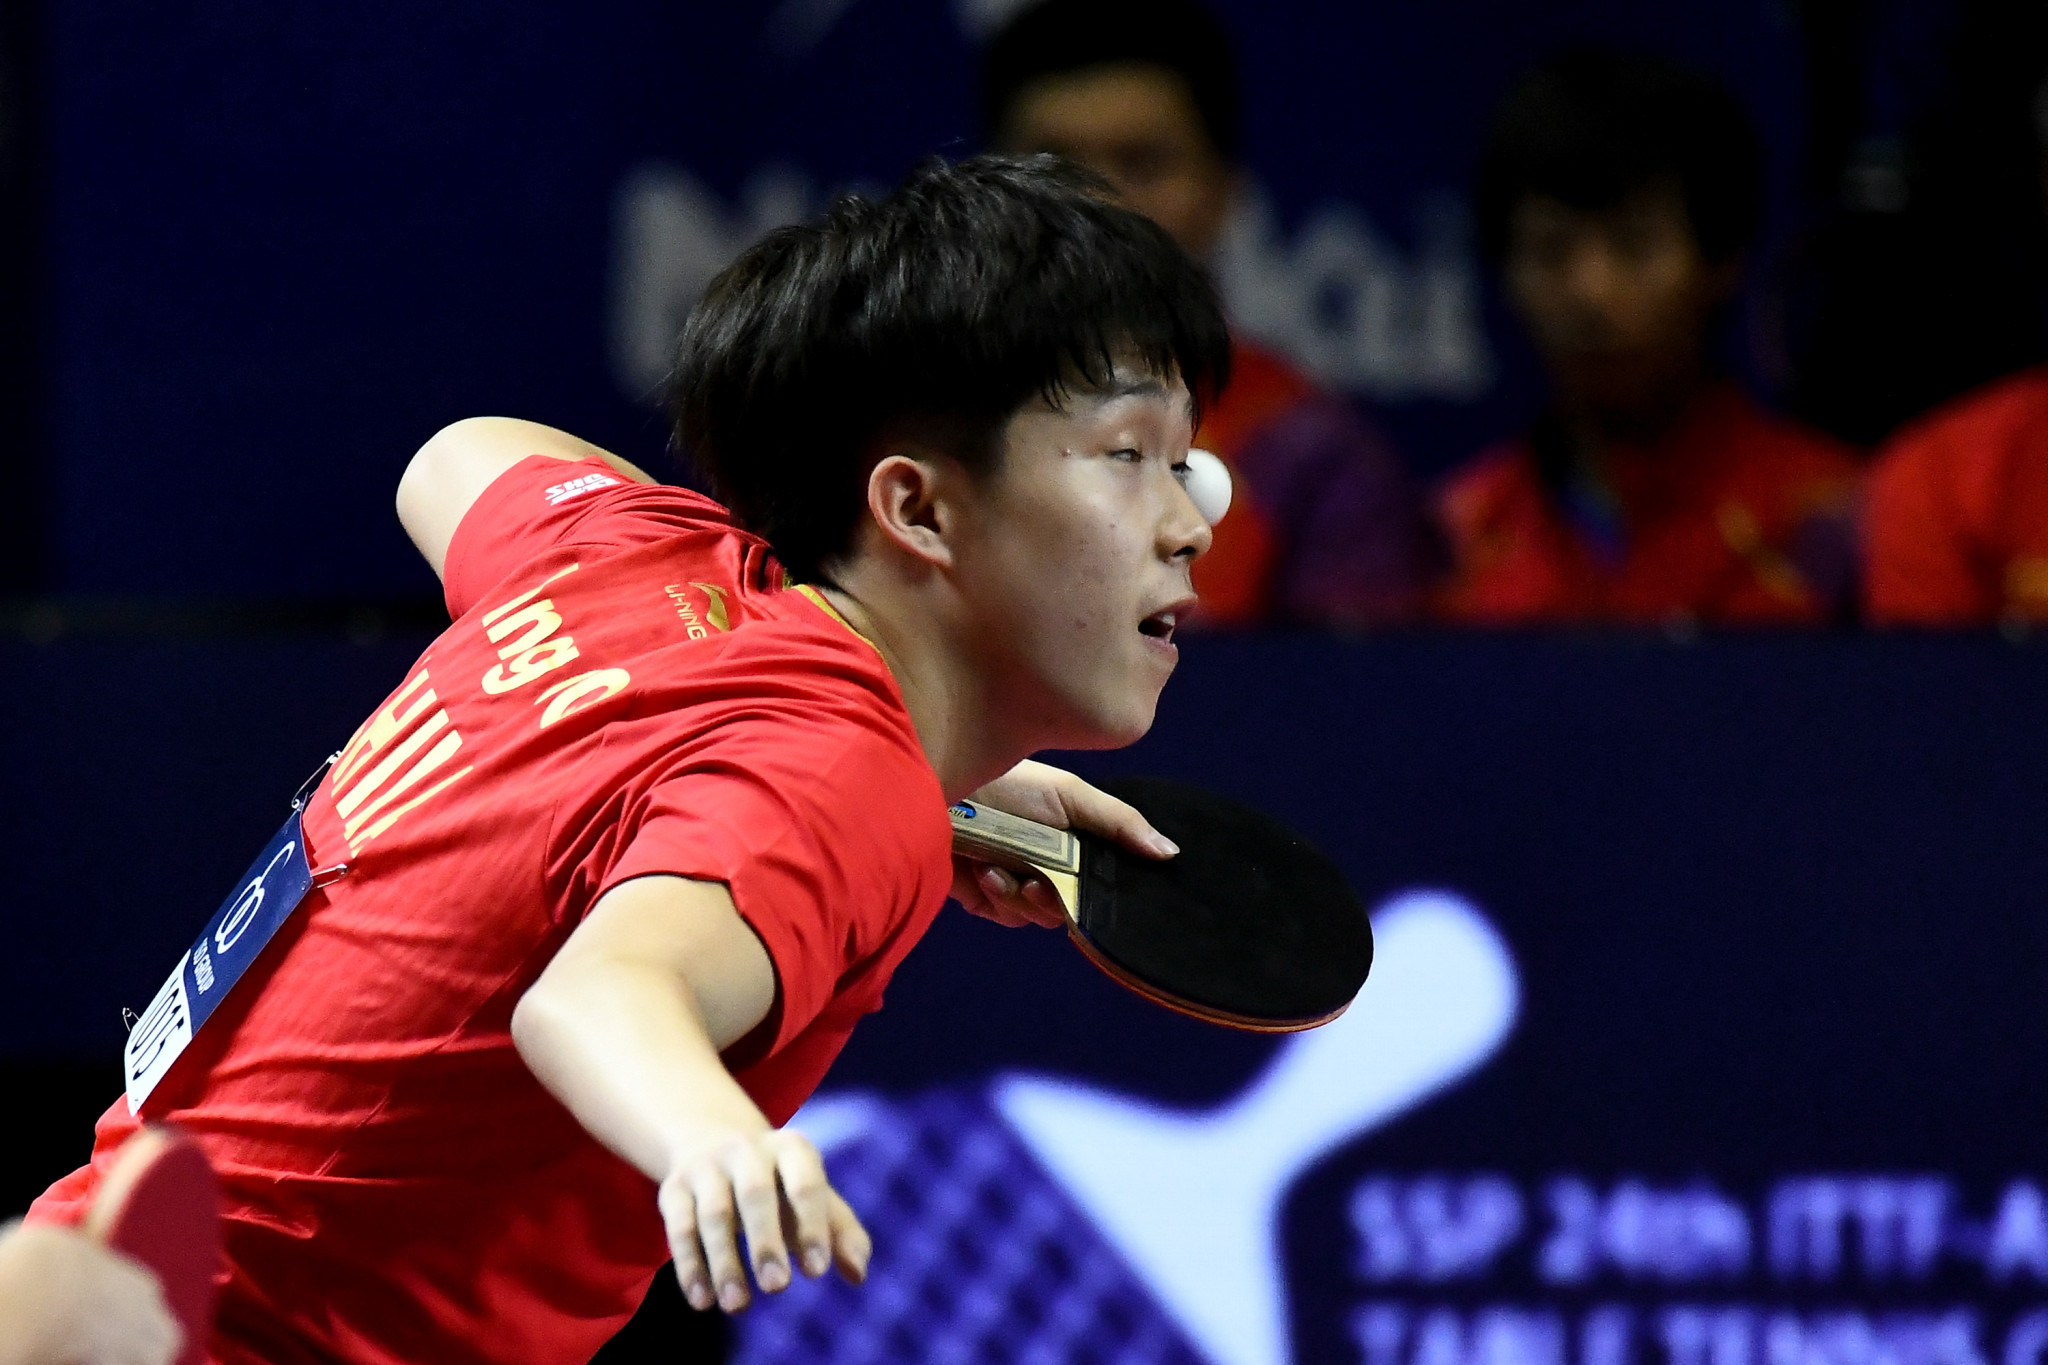 Wang Chuqin sealed his first ITTF World Tour title with victory in the men's singles event ©Getty Images